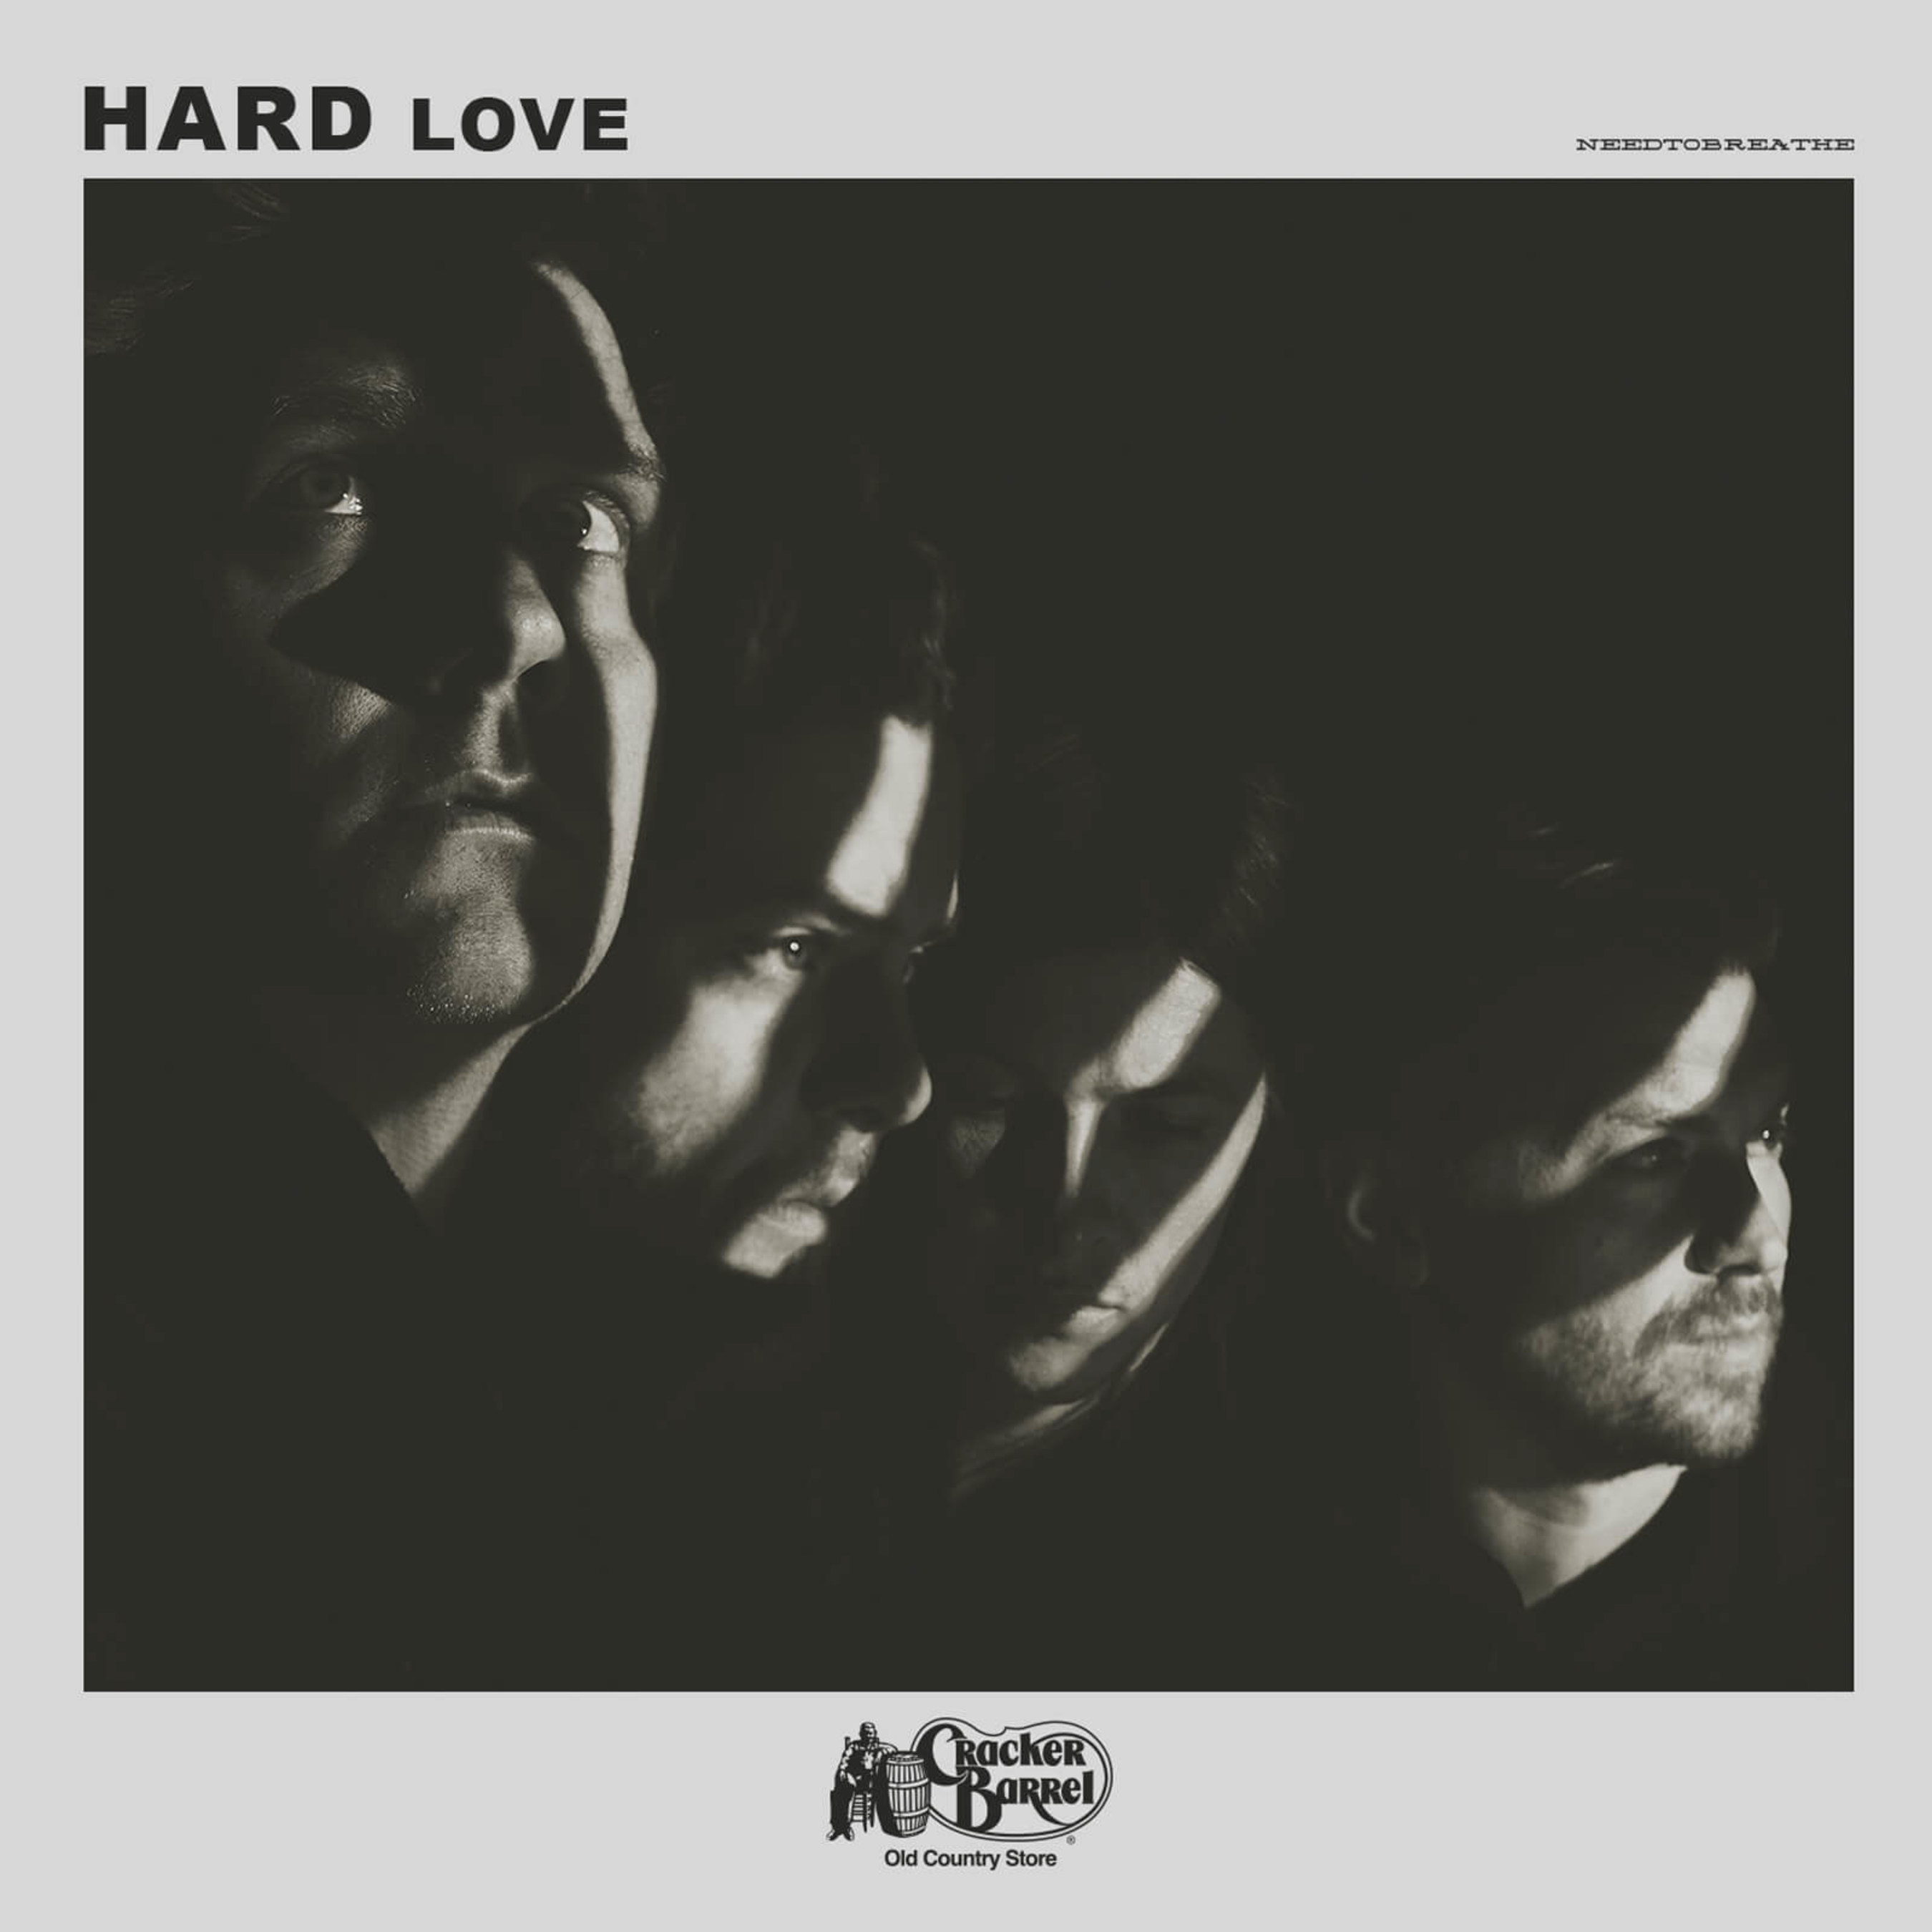 """NEEDTOBREATHE's special edition of """"H A R D L O V E"""" will be available in Cracker Barrel stores nationwide and online at crackerbarrel.com on Friday, July 15, 2016."""